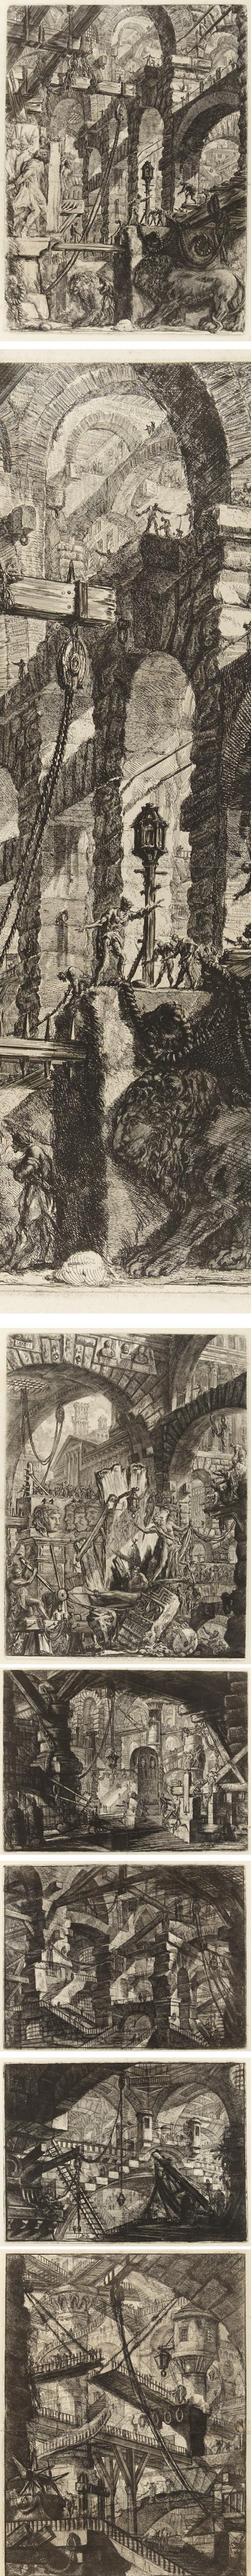 Piranesi's Imaginary Prisons at Princeton University Art Museum